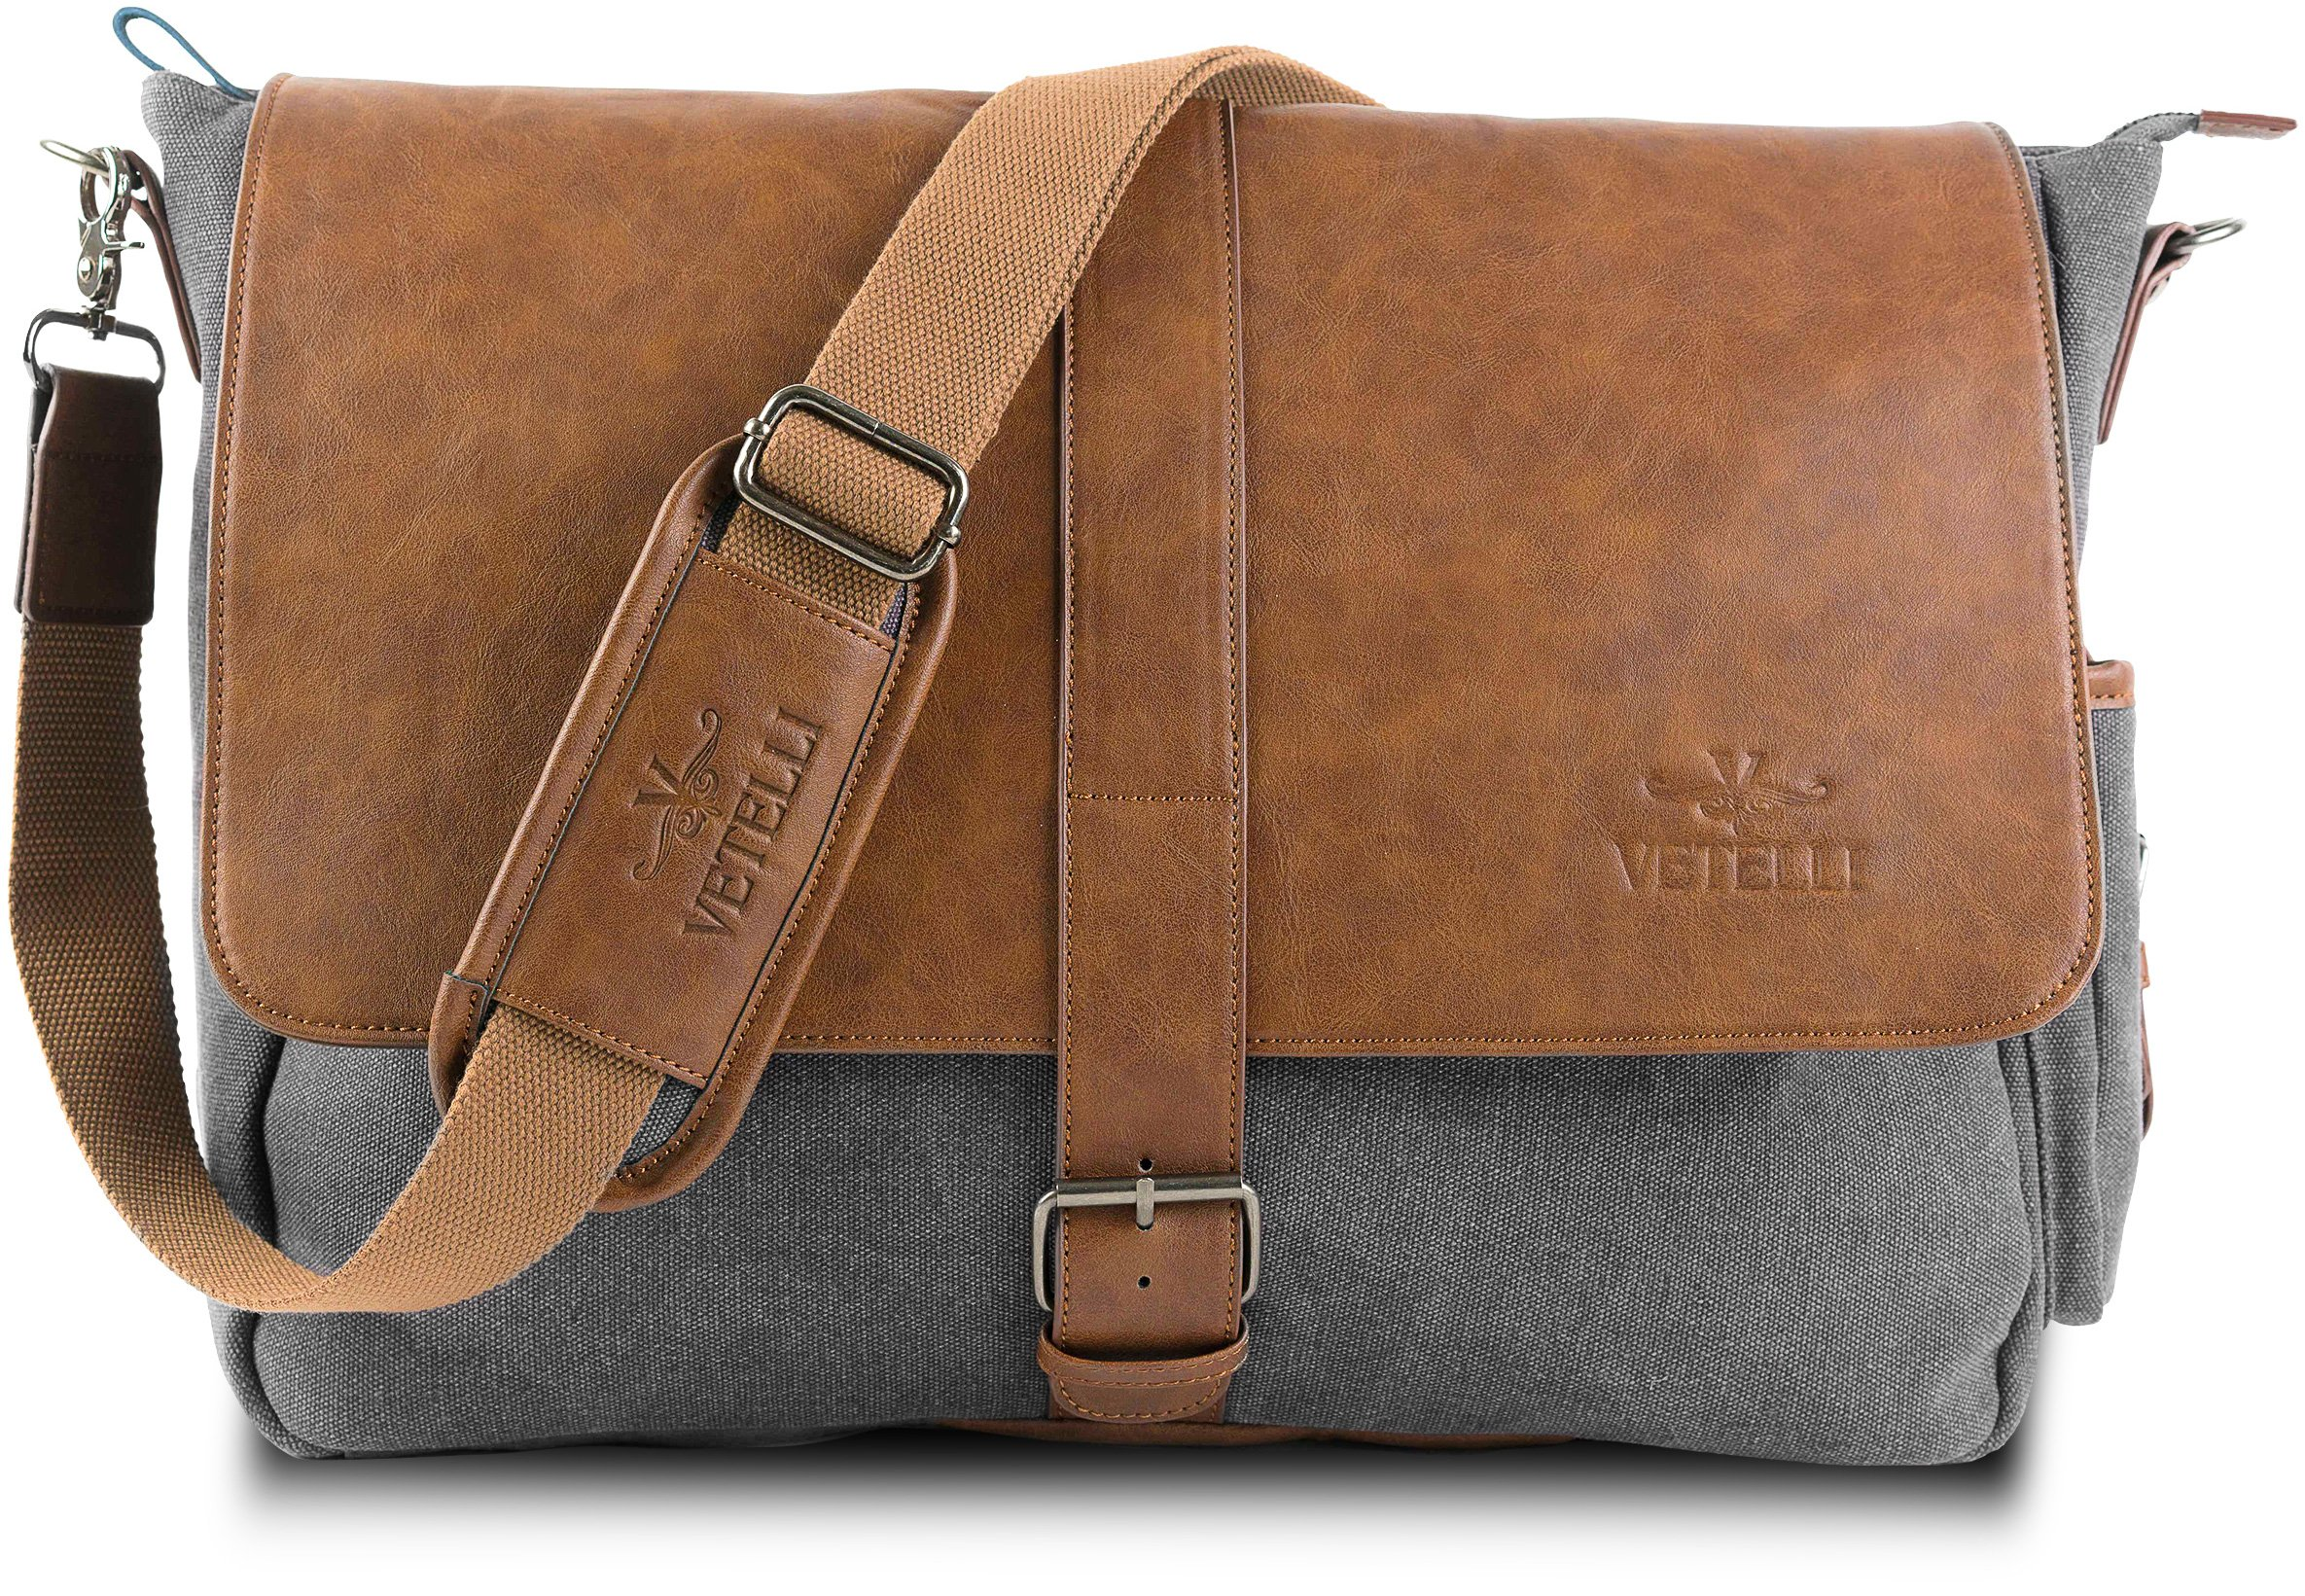 """Vetelli Laptop Bag / Laptop Messenger Bag with ScratchProtect sleeve for Computers up to 15.6"""" (Leather + Canvas) - Bag Dimensions: 19.5"""" x 12.5"""" x 4.5"""""""